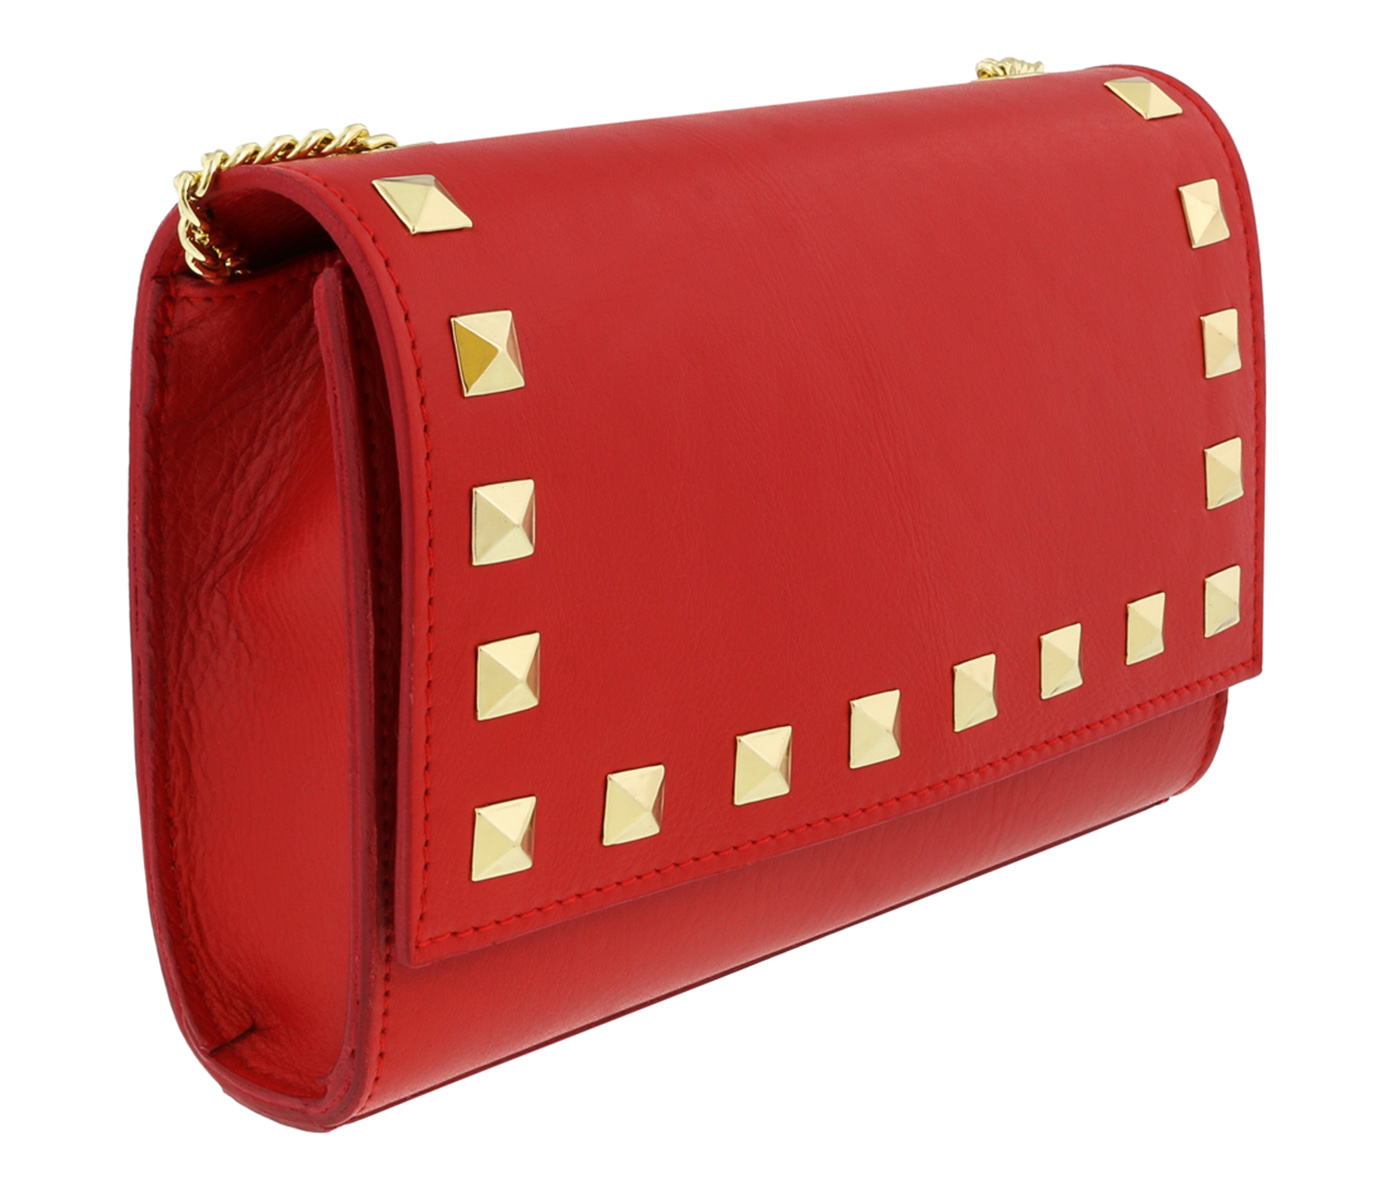 Scheilan Coral Red Leather Studded Flap  Shoulder Bag